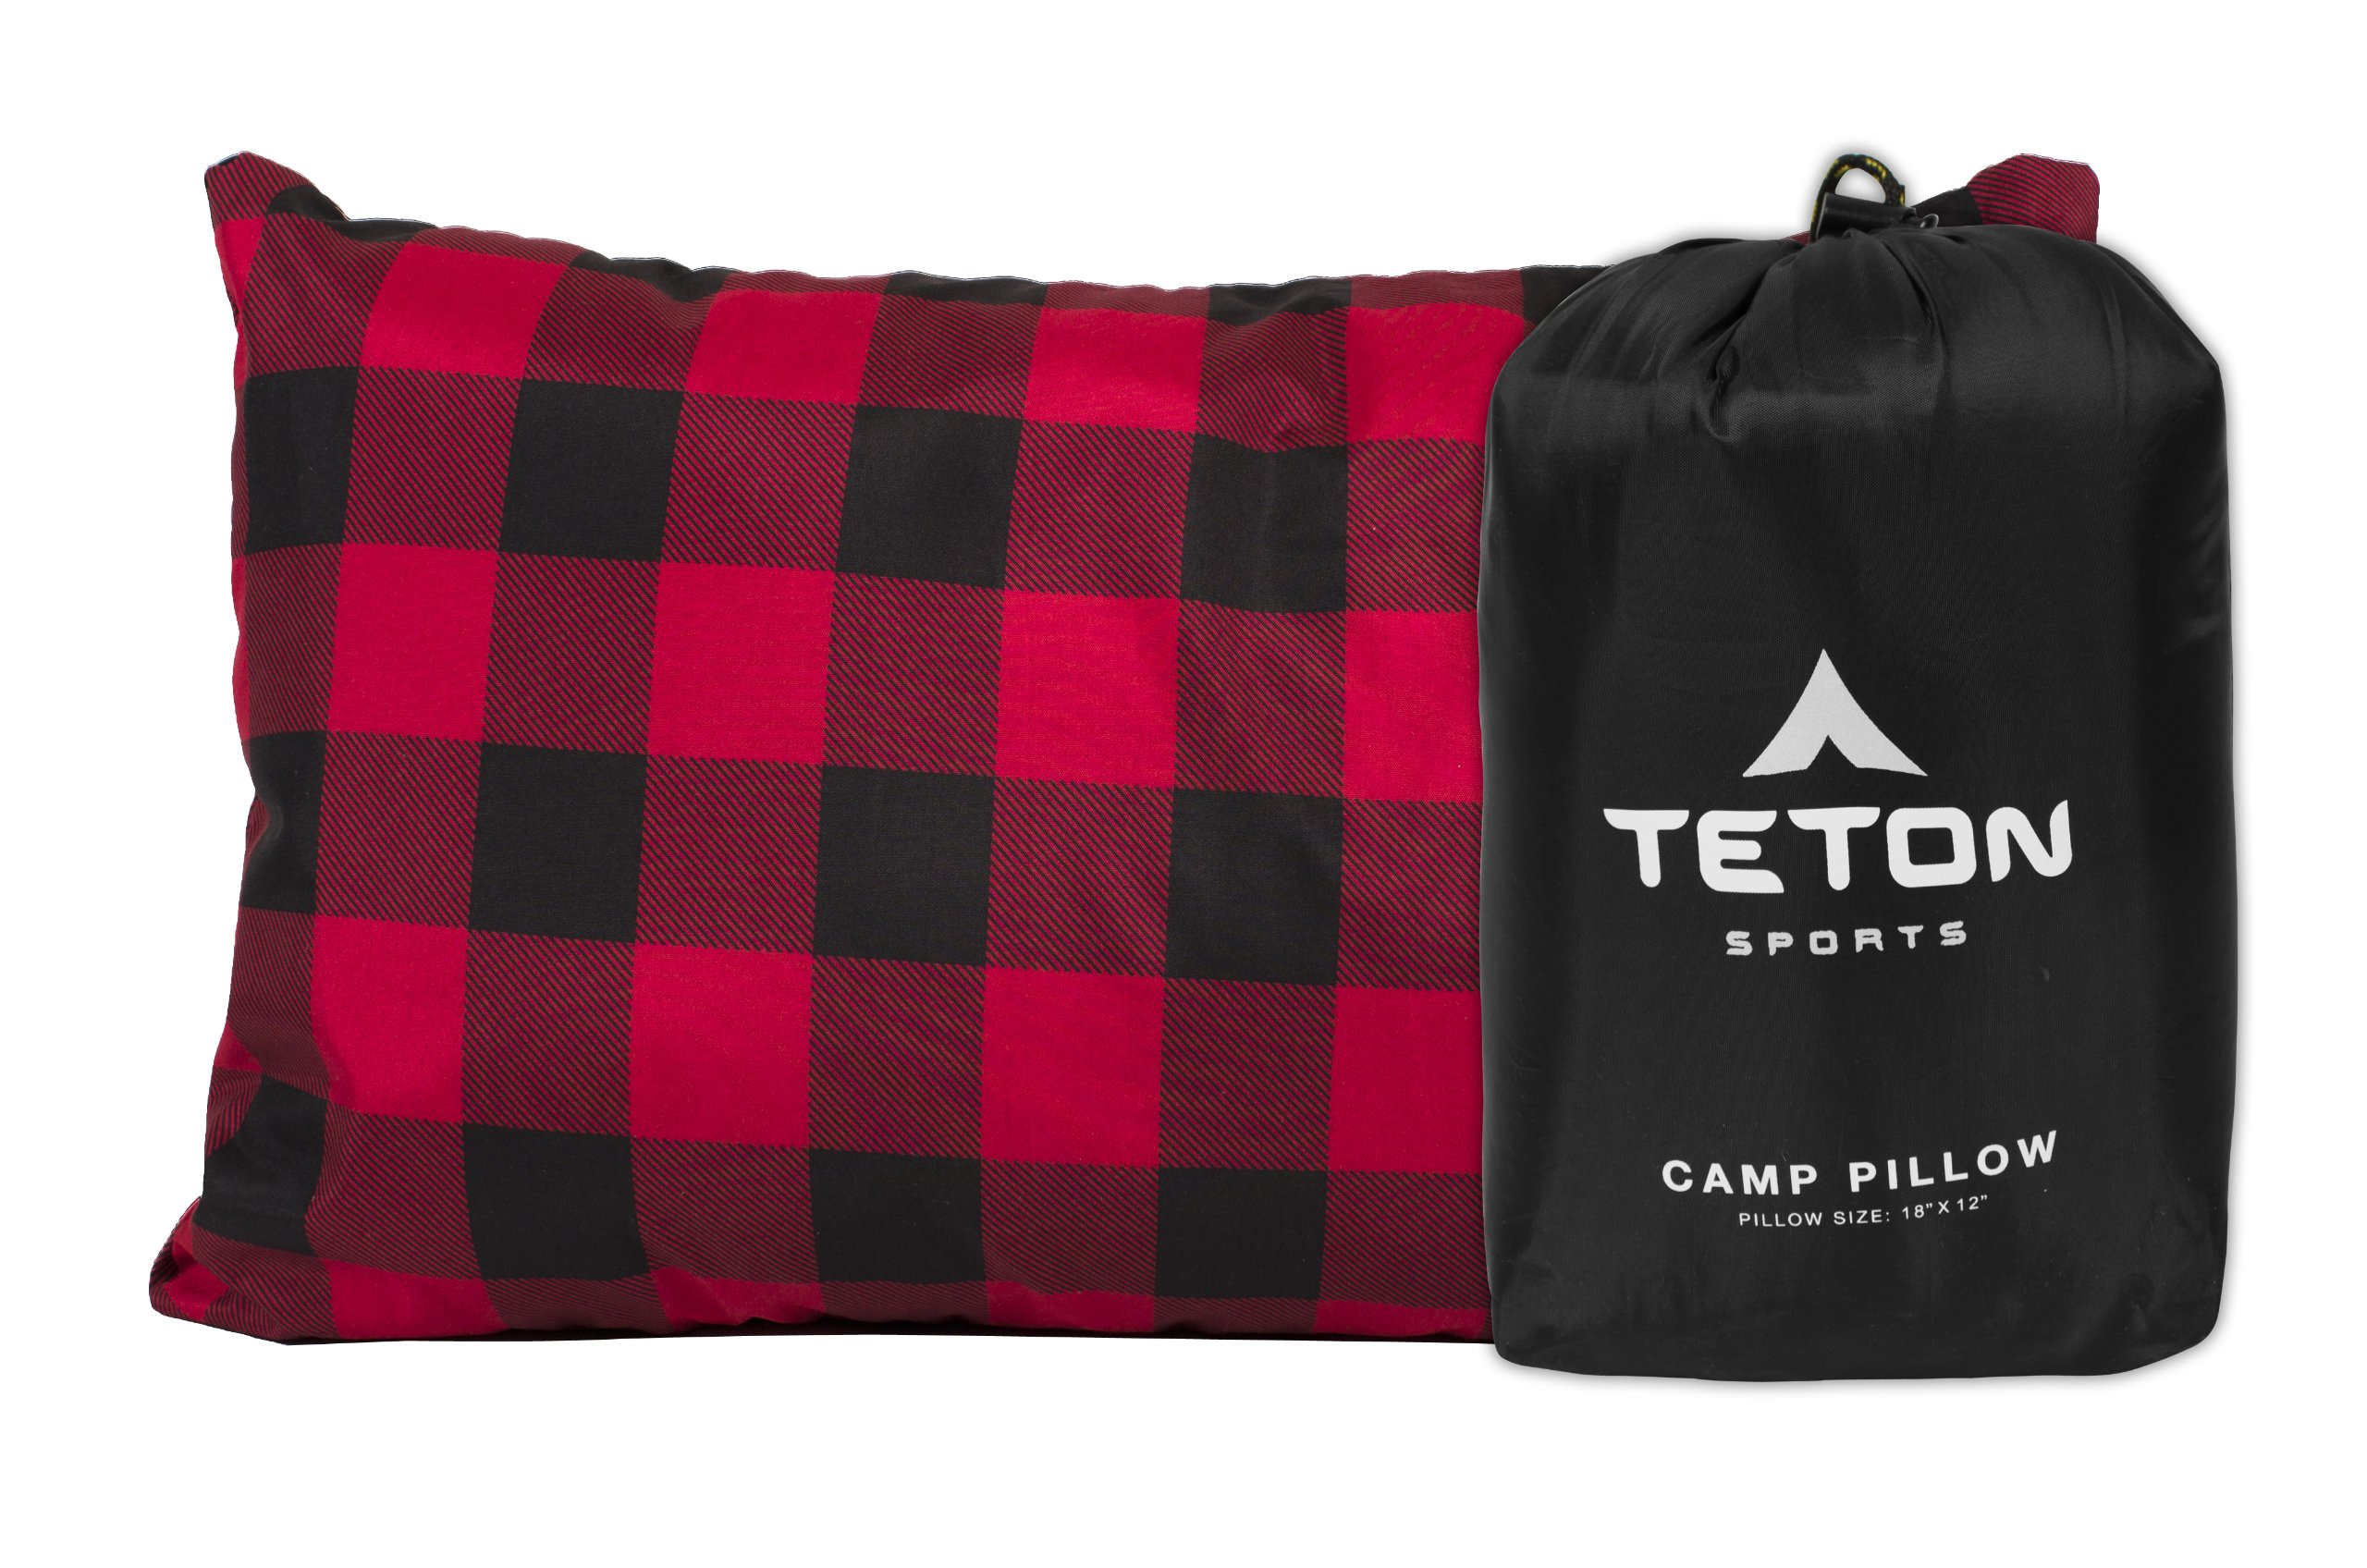 thermarest pillow road a trip compressible best essentials therm patrol gear rest